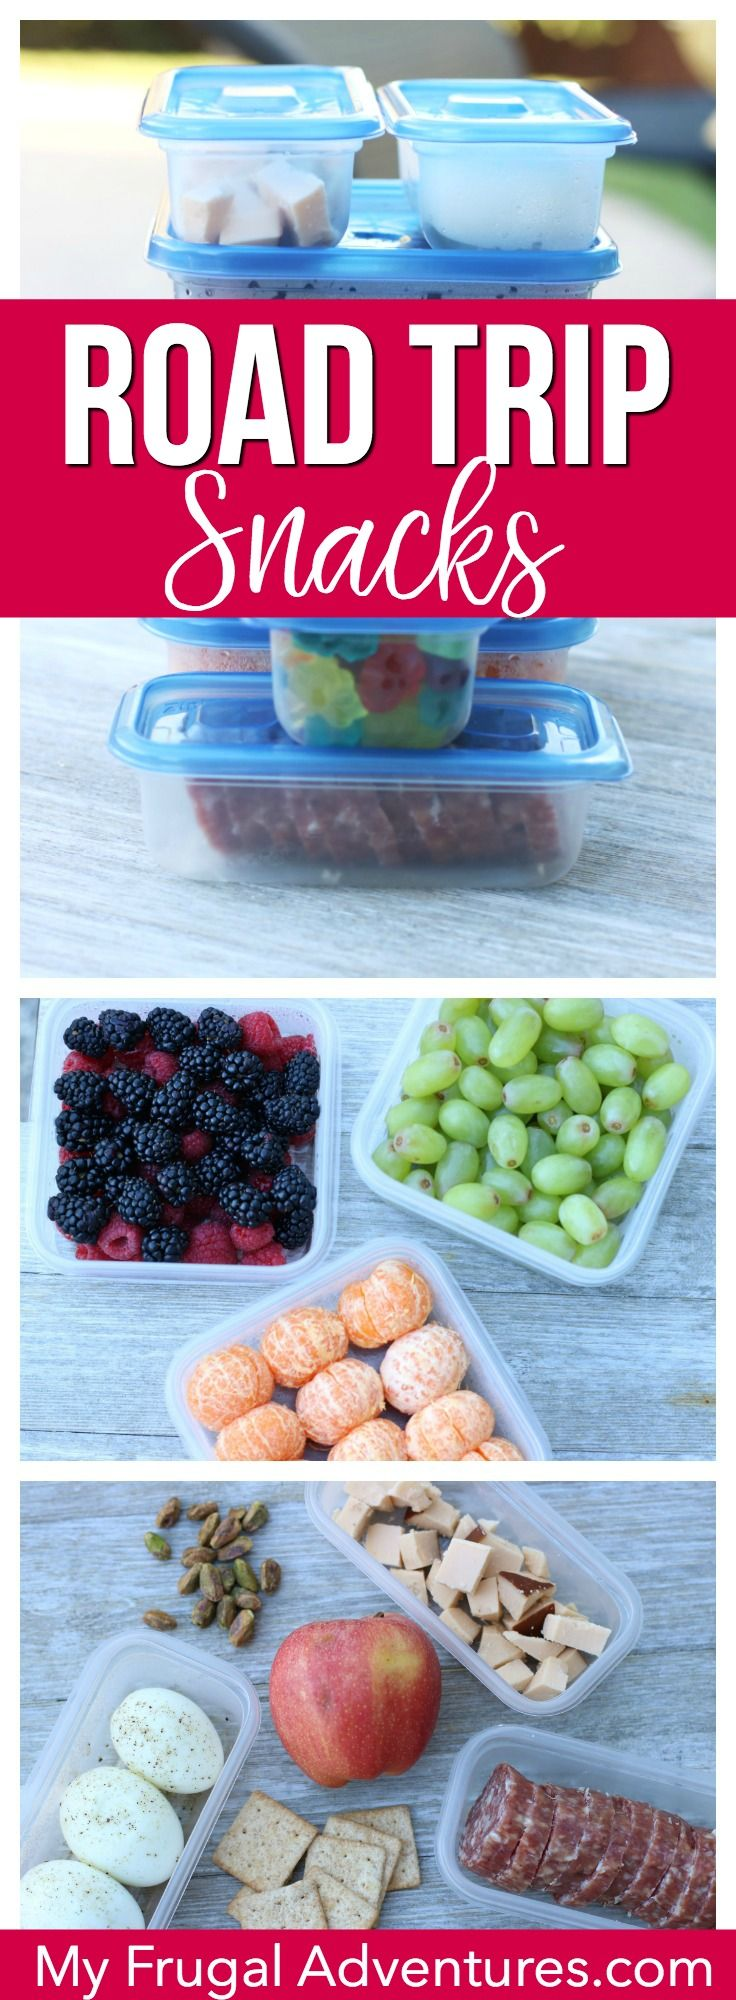 road trip snack ideas | travel destinations and tips | pinterest